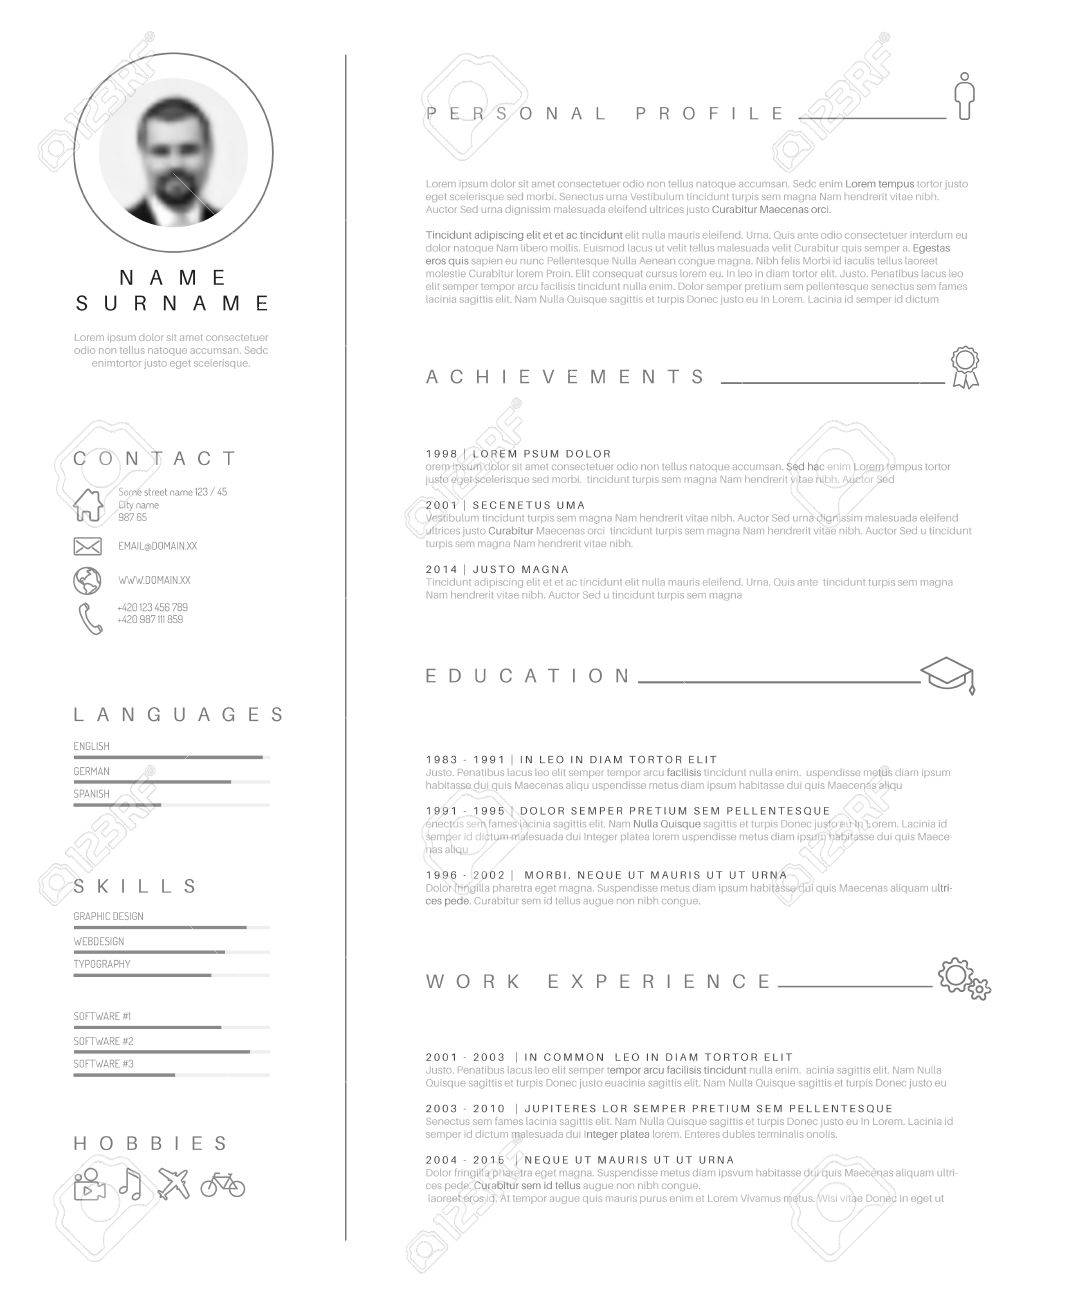 Minimalist cv resume template with nice typography design royalty minimalist cv resume template with nice typography design stock vector 57912893 yelopaper Gallery